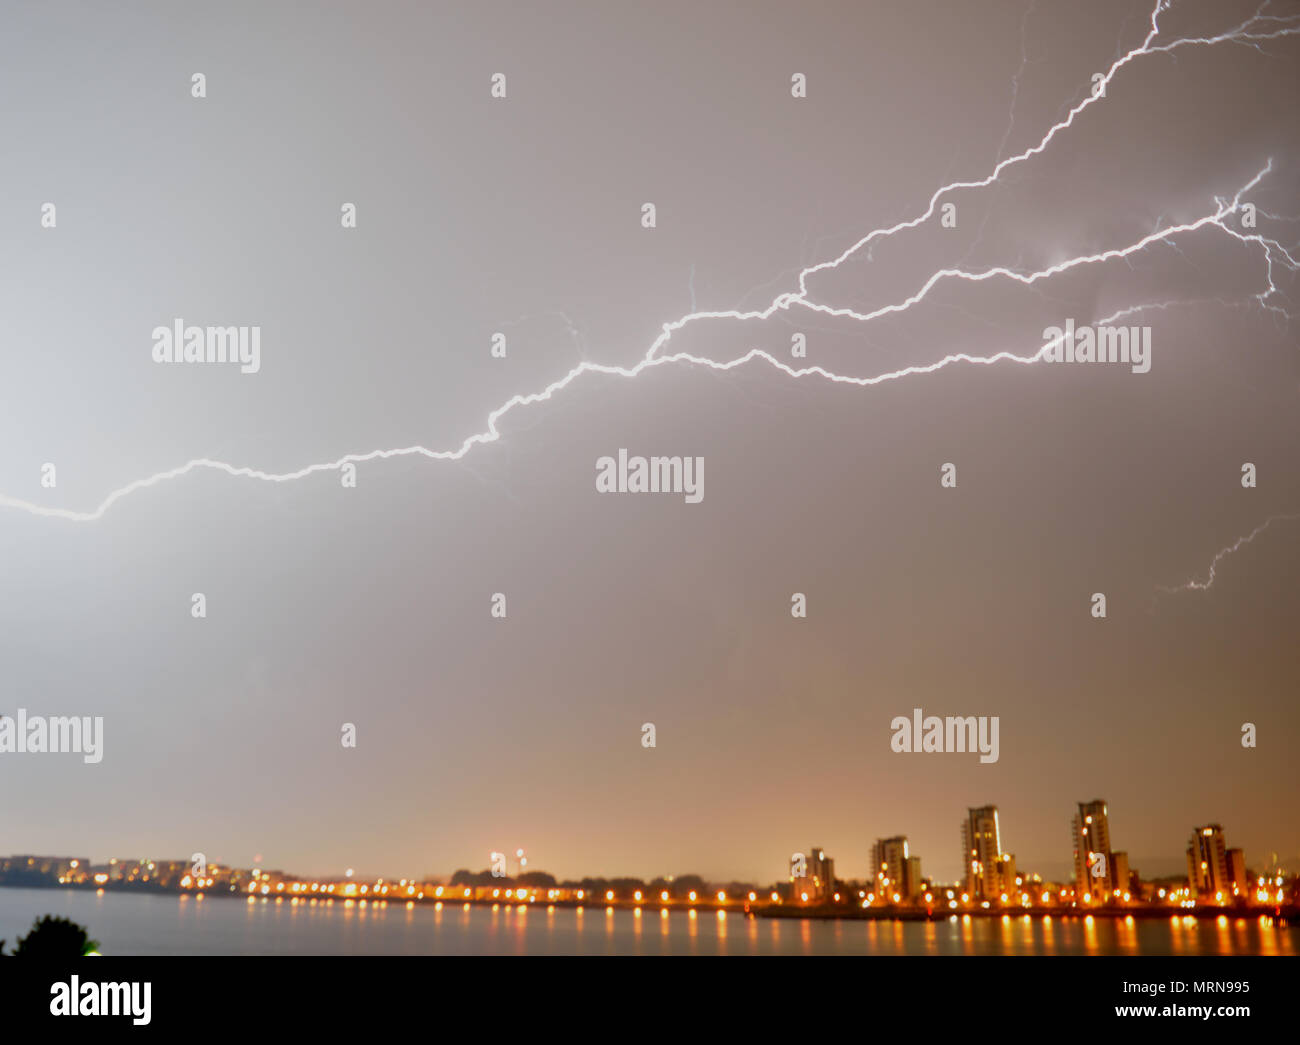 lightning striking the ground stock photos lightning striking the